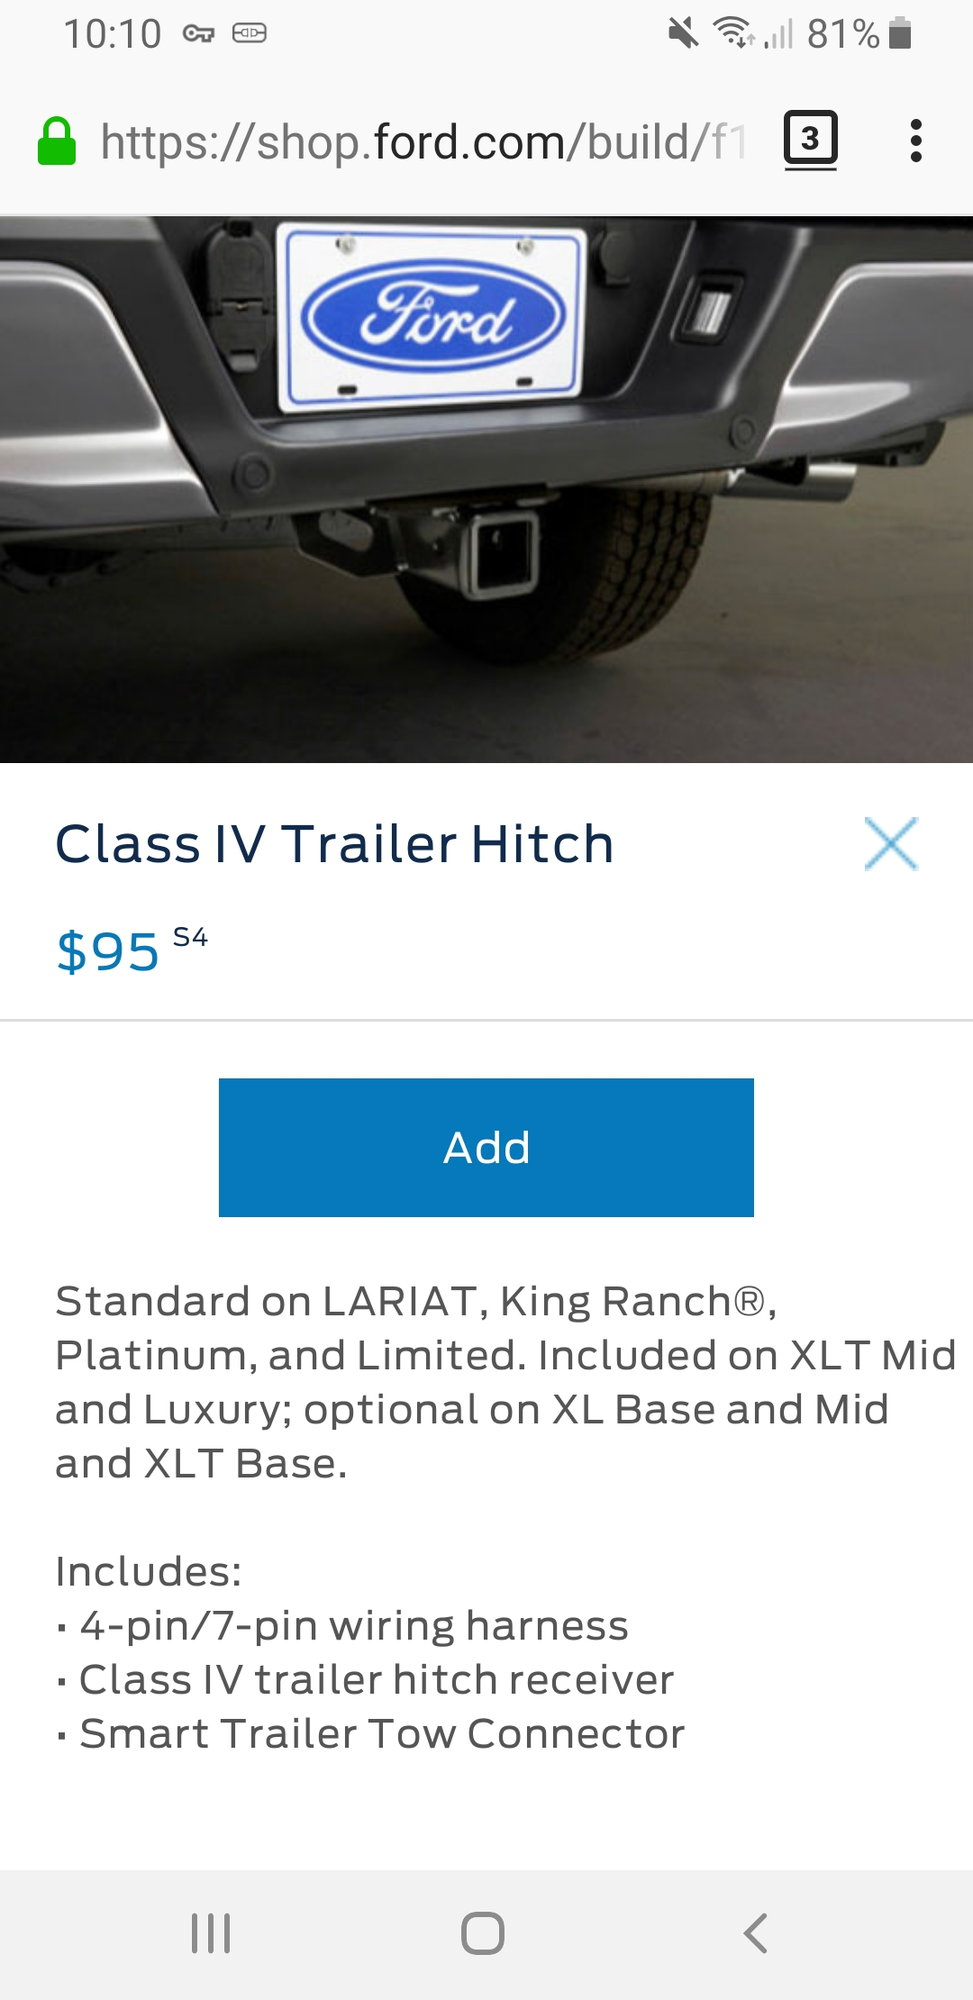 Class Iv Hitch >> Towing Package (Or Lack Thereof) And The Dealer Makes It Right - Page 2 - Ford F150 Forum ...